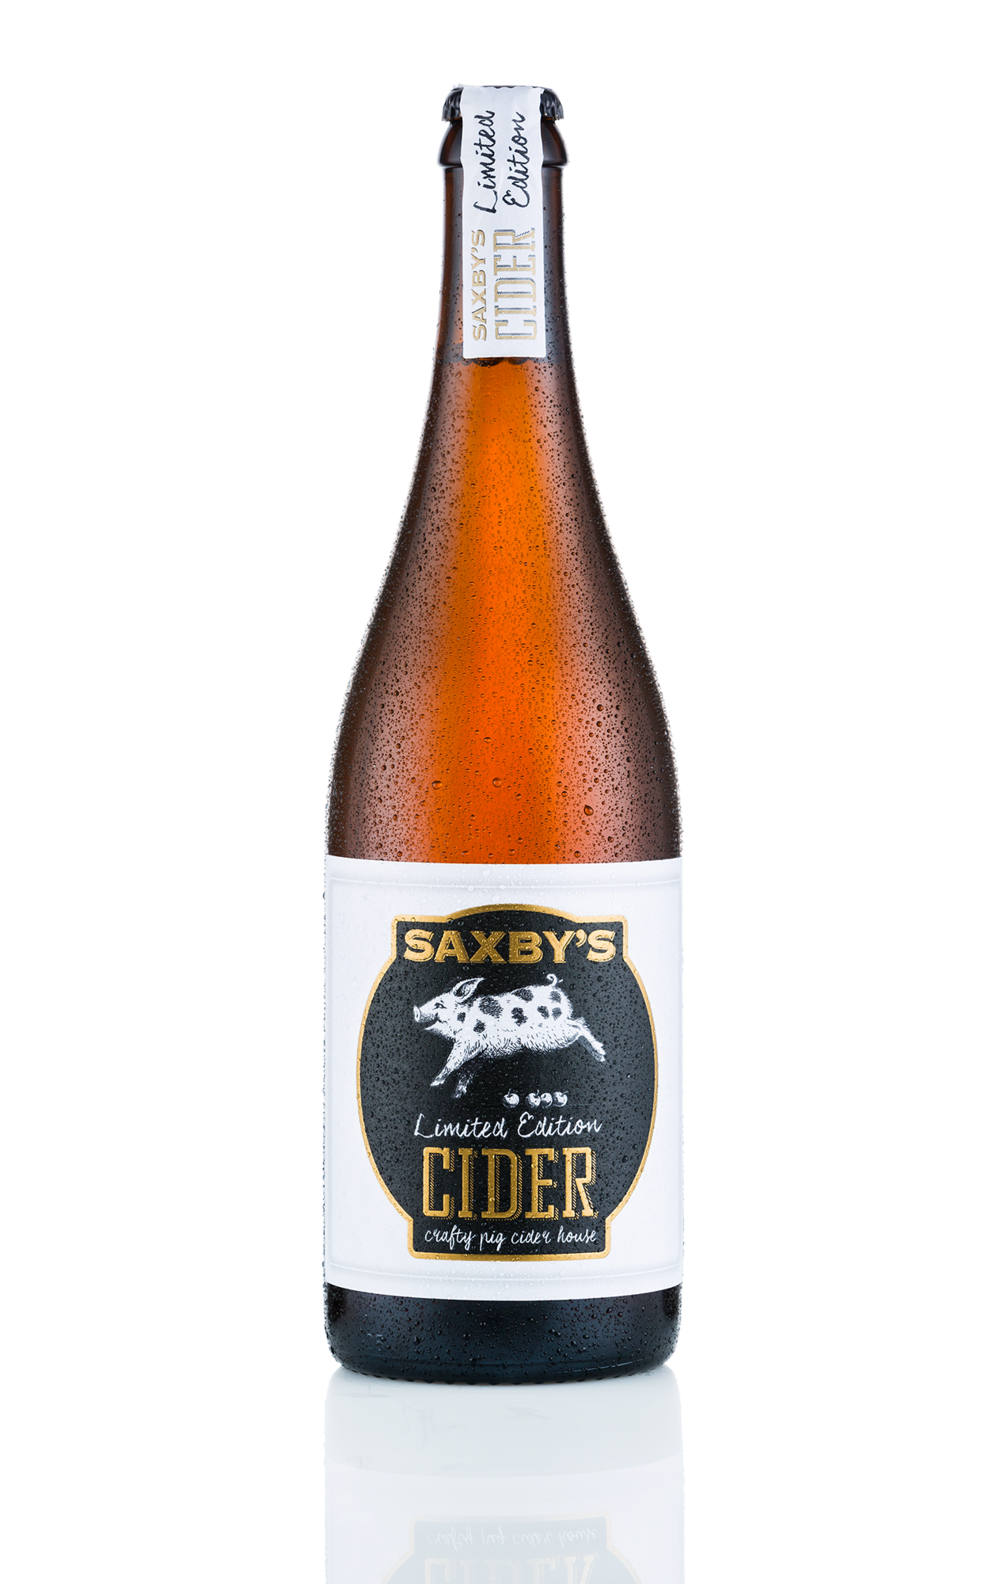 saxbys-cider-limited-edition-bottle-1263.png